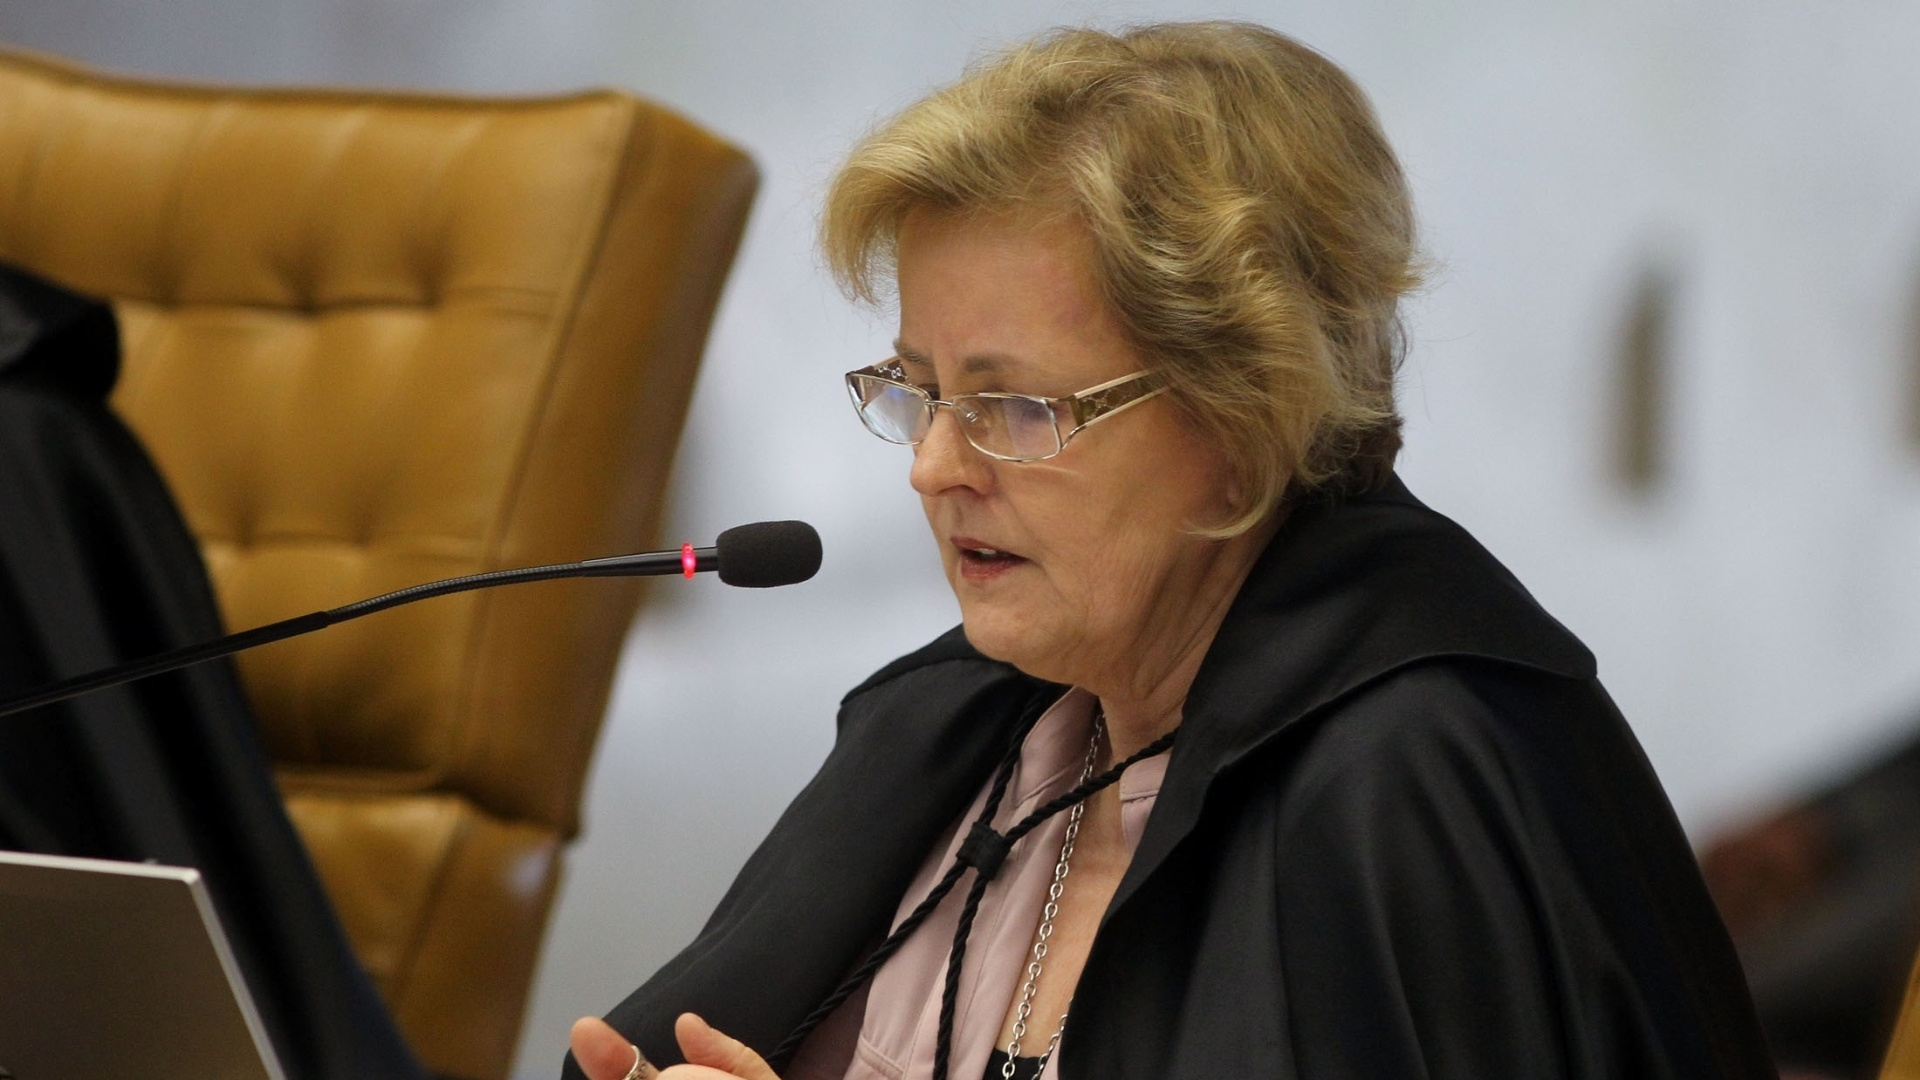 10.dez.2012 - A ministra Rosa Weber participa de sesso no STF que discute se caber  corte ou  Cmara definir a perda de mandato dos deputados federais condenados no processo do mensalo